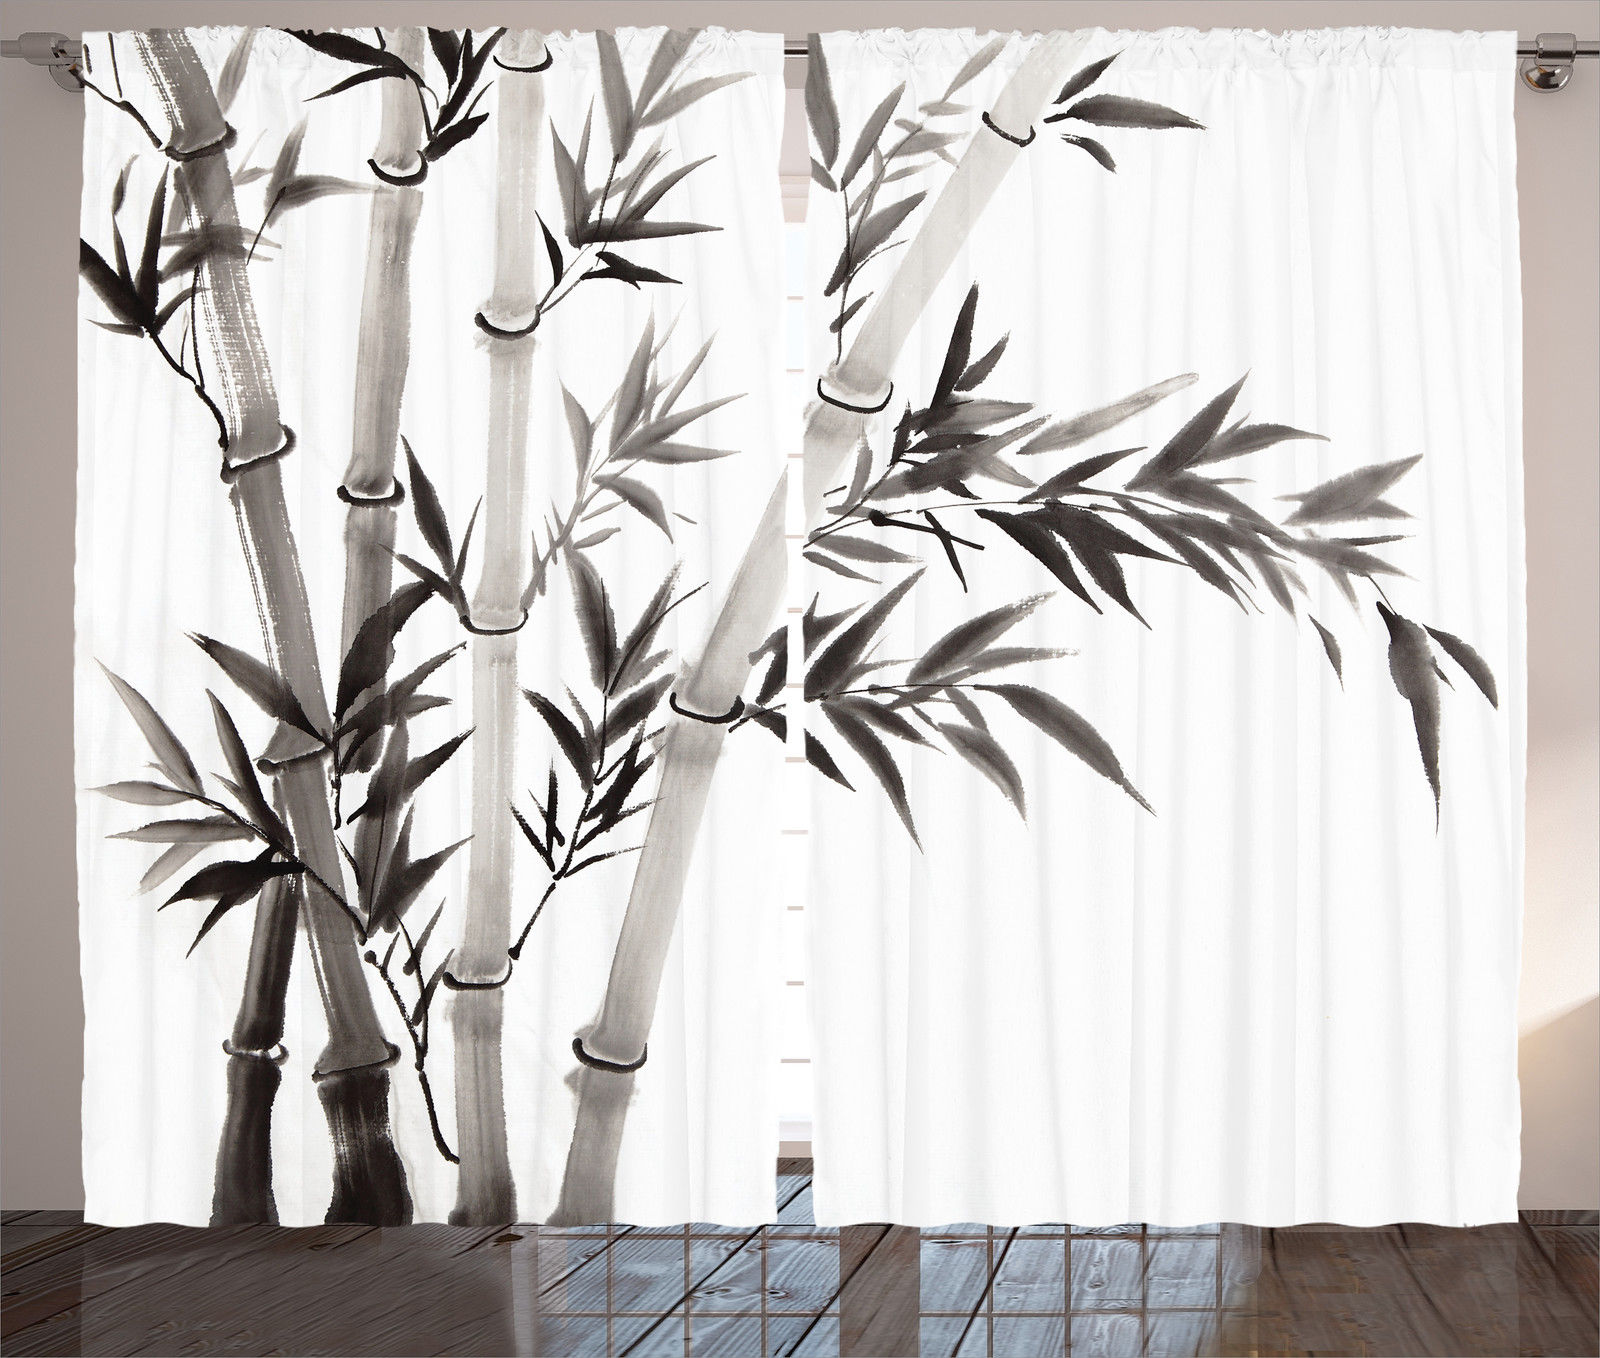 Bamboo Tree Asian Cultural Ink Art Calligraphy Style Image